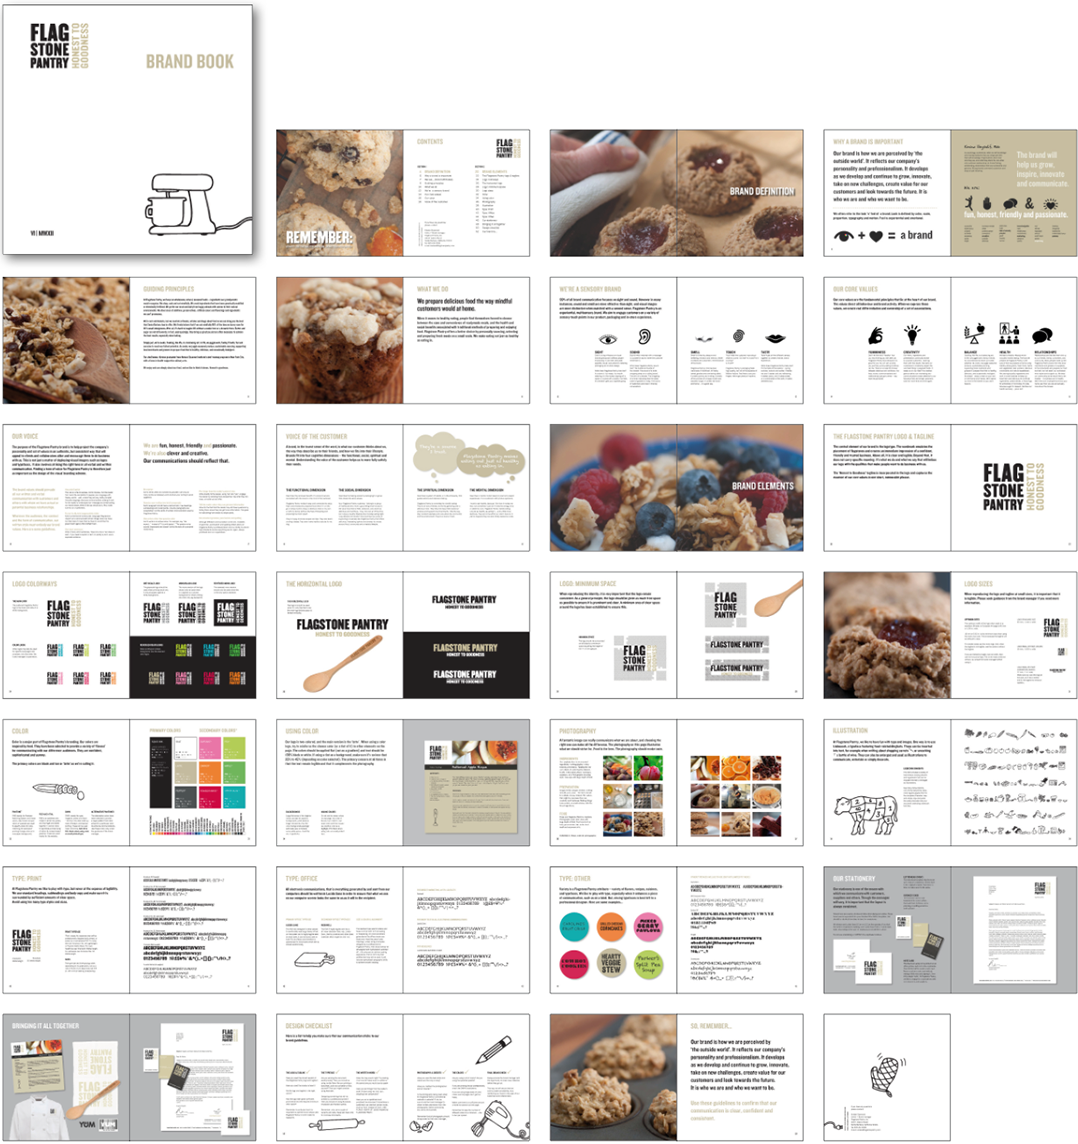 Flagstone Pantry Brand Guidelines